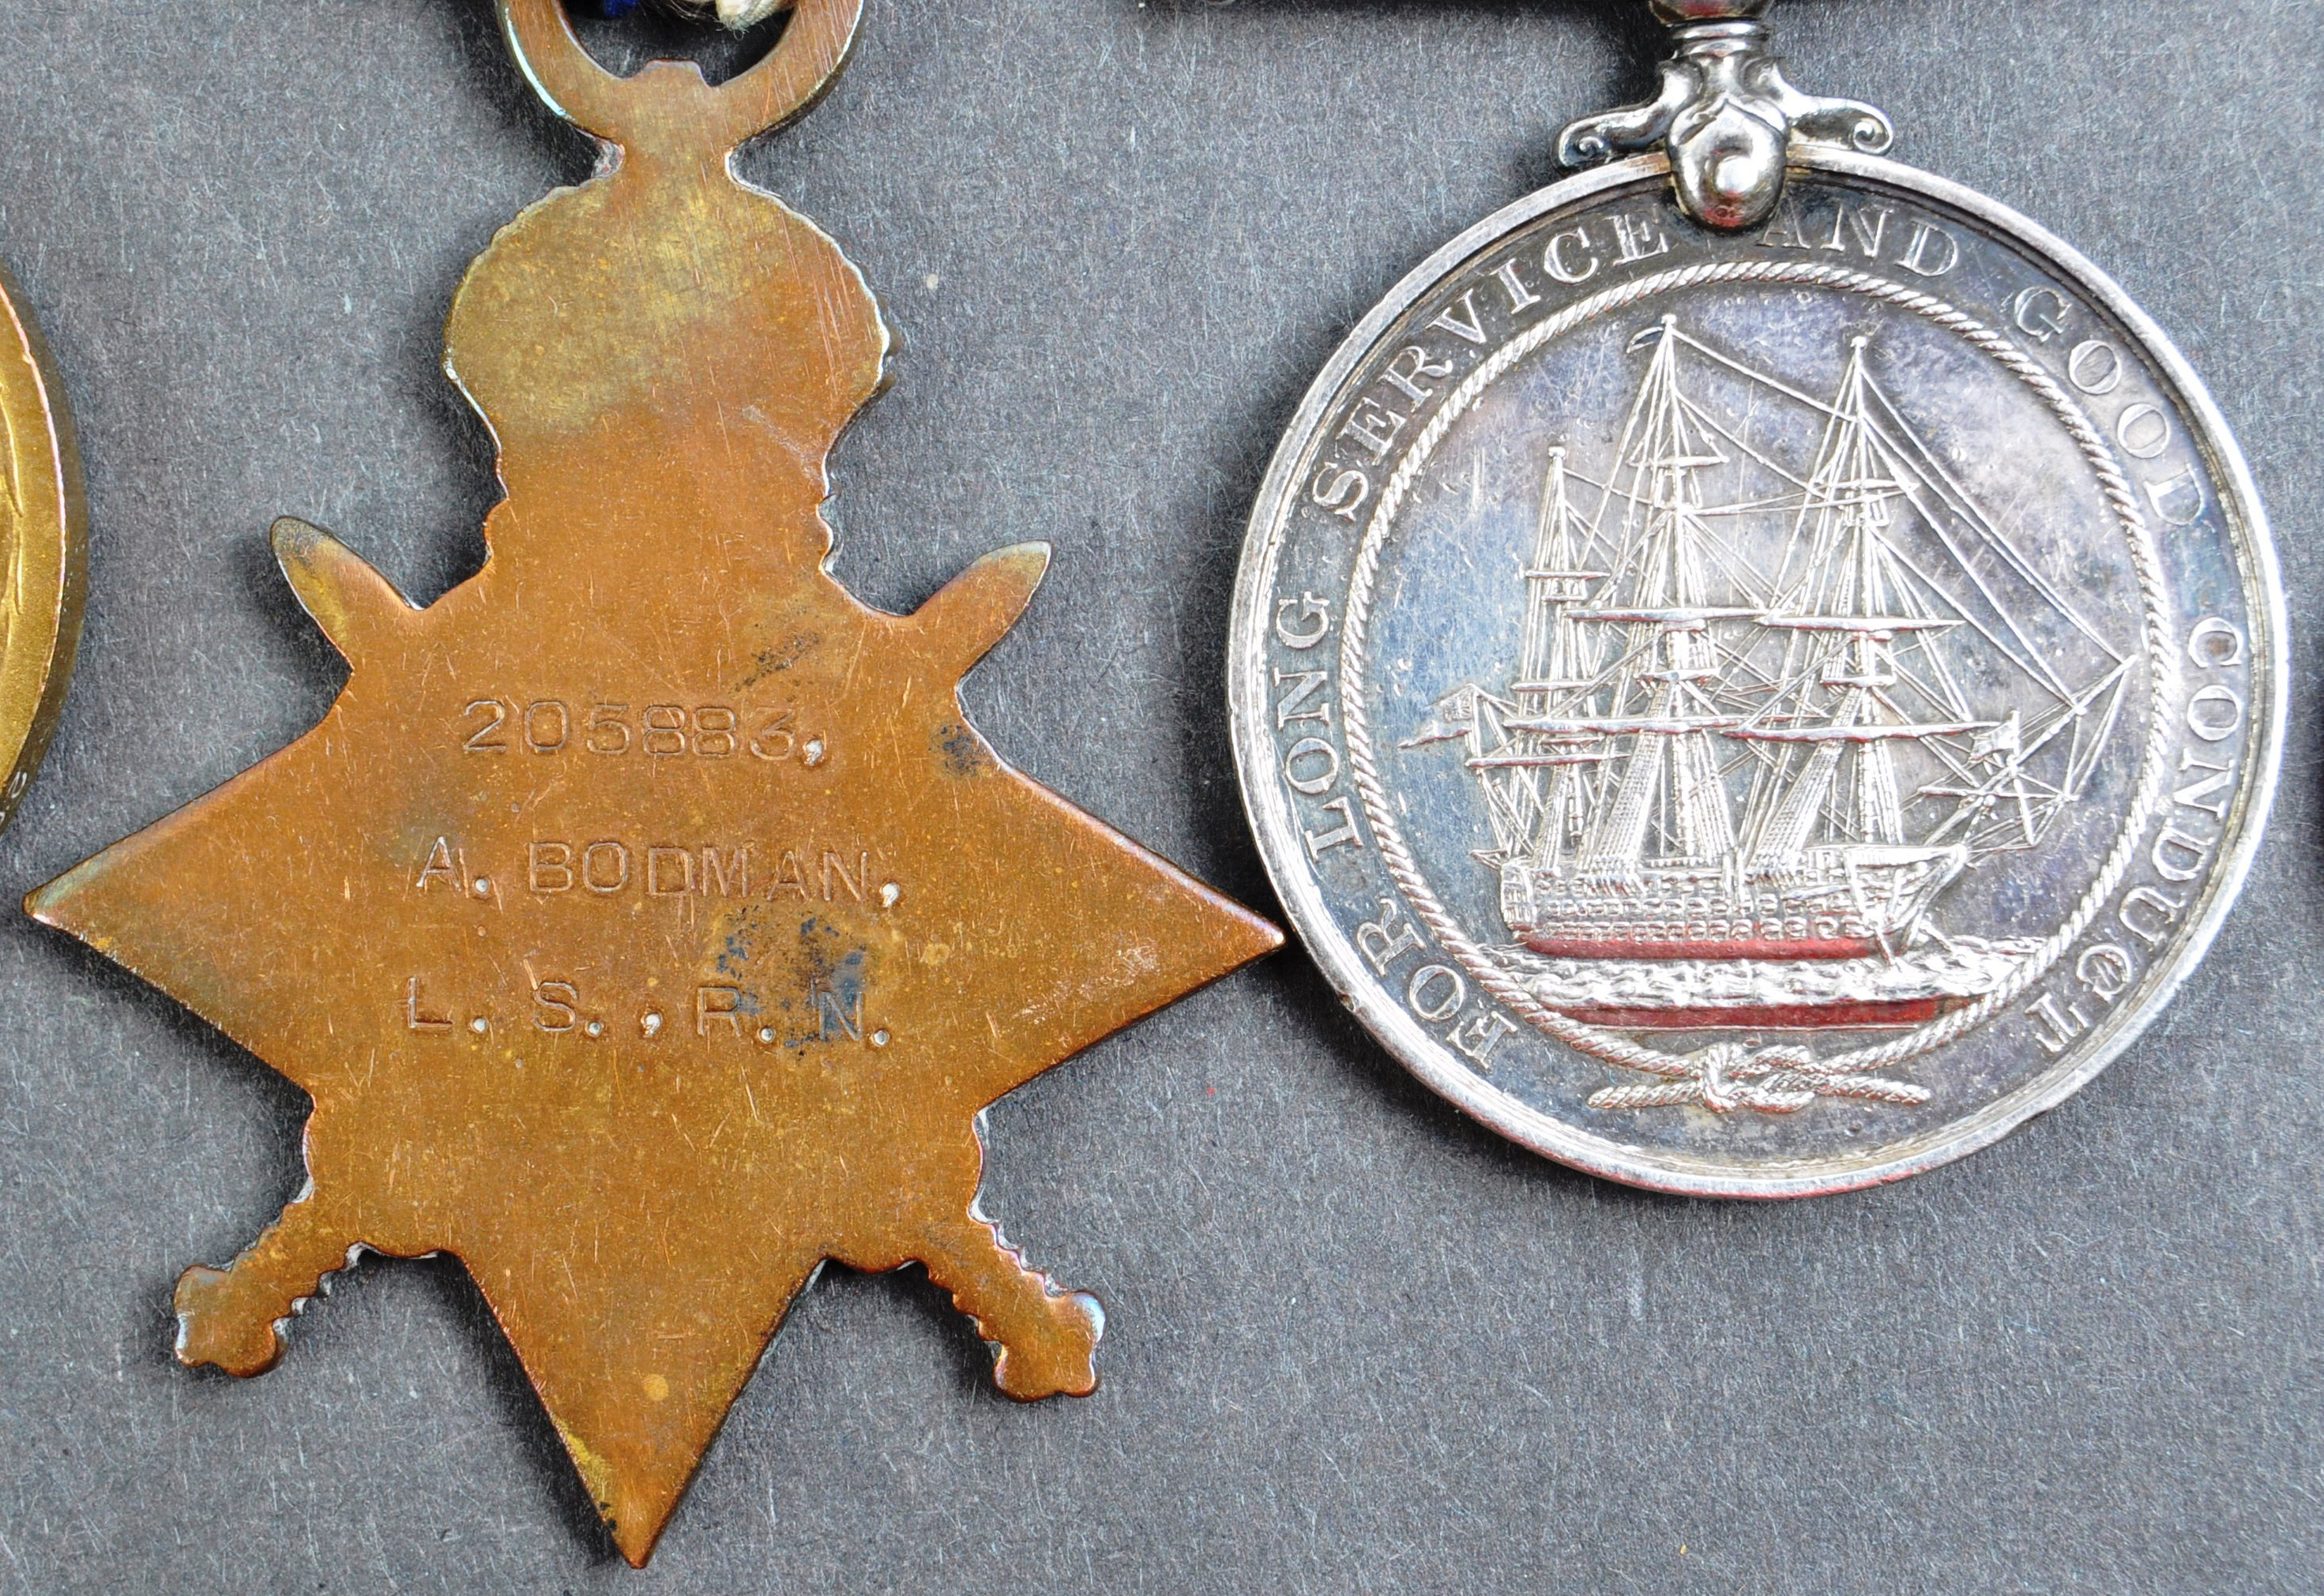 WWI FIRST WORLD WAR MEDAL GROUP - LEADING SEAMAN ROYAL NAVY - Image 6 of 10